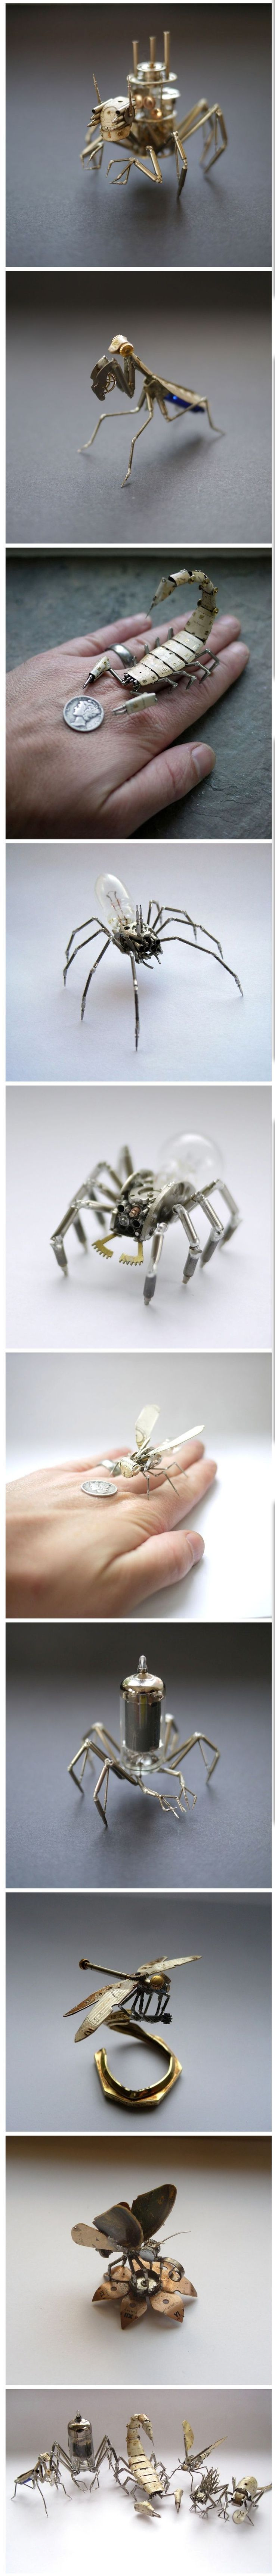 Tiny Mechanical Insects Made of Watch Parts - Monde Du Loisir…                                                                                                                                                                                 Plus